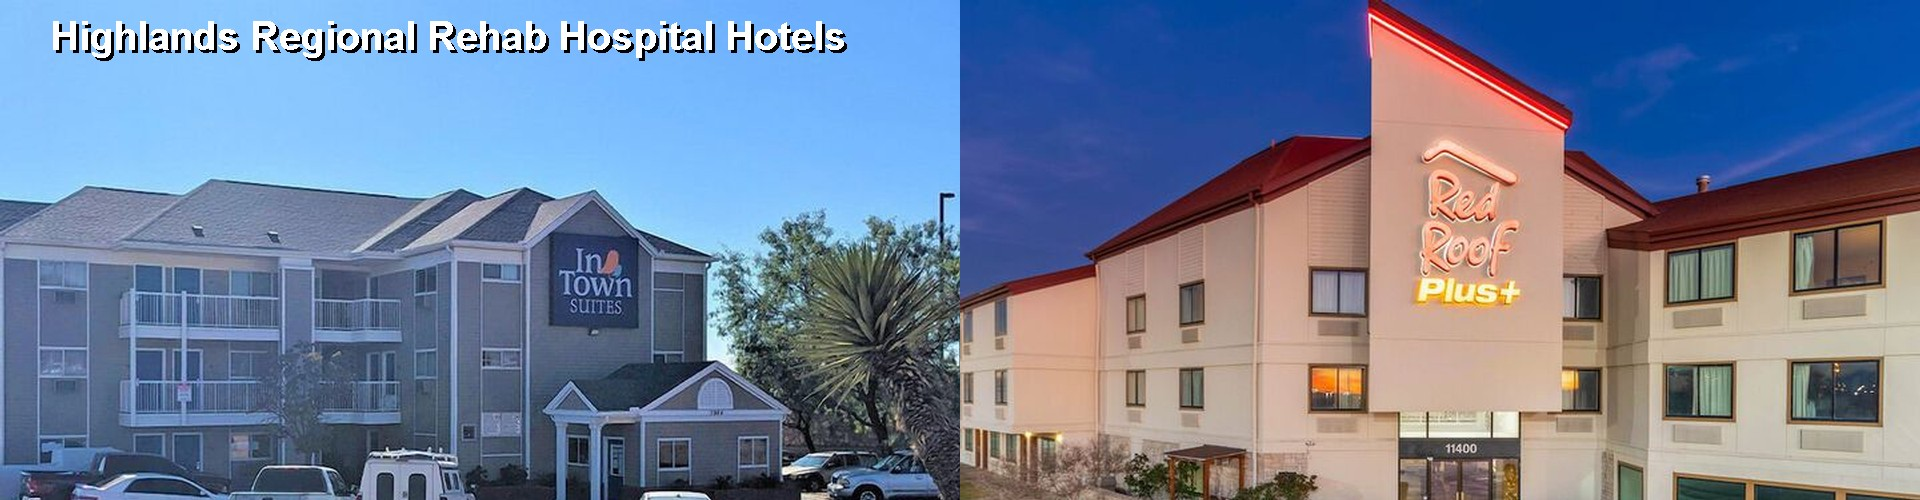 5 Best Hotels near Highlands Regional Rehab Hospital